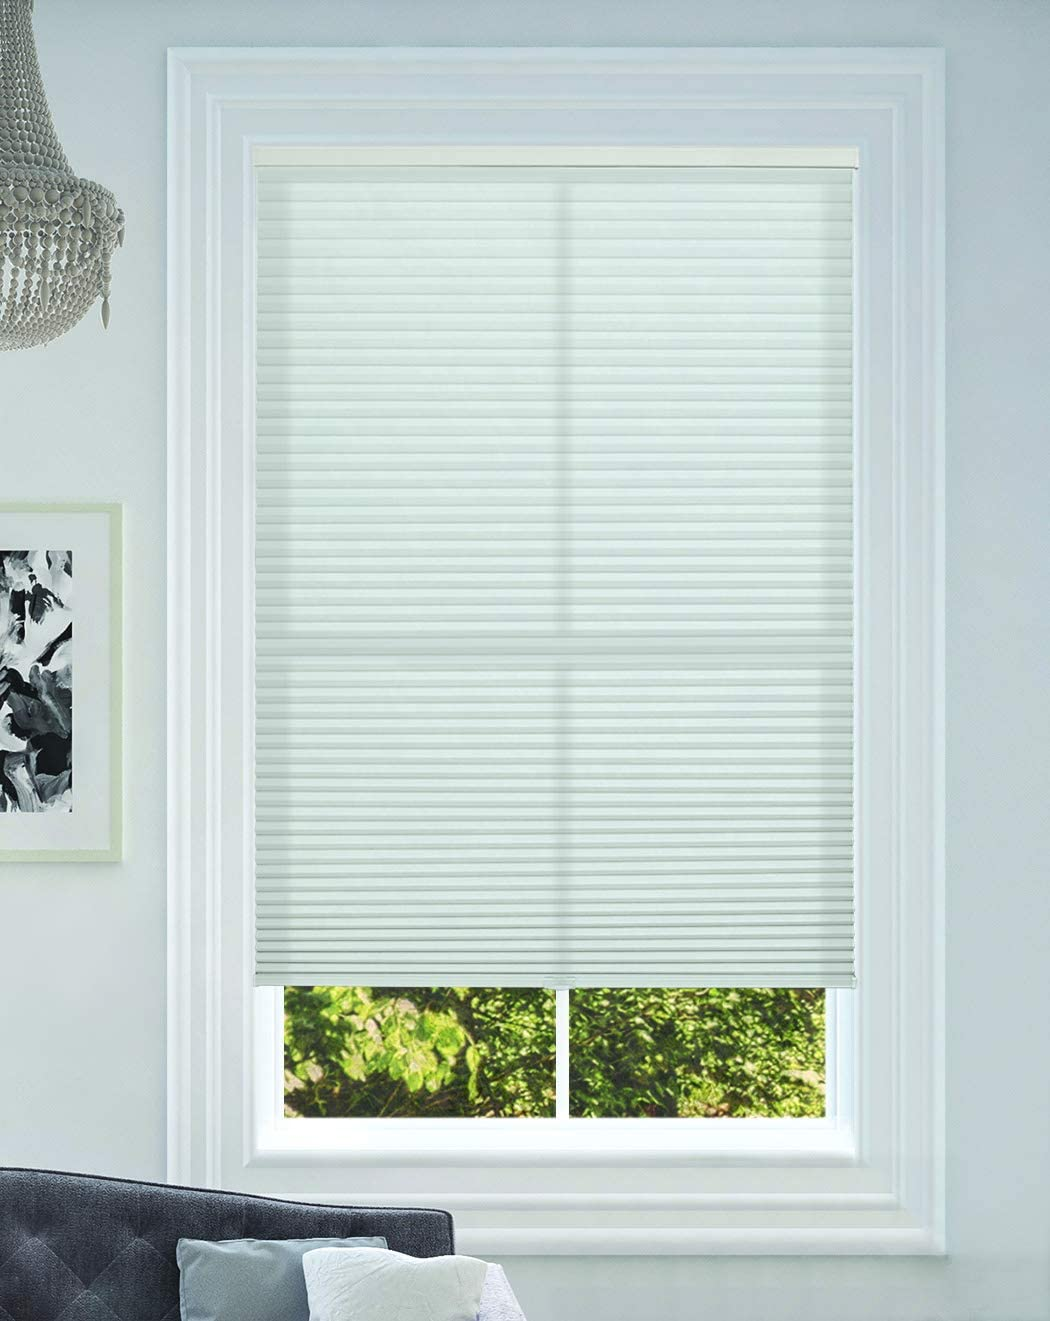 Light Filtering Size: 34 W x 48 H White BlindsAvenue Cellular Honeycomb Cordless Shade 9//16 Single Cell